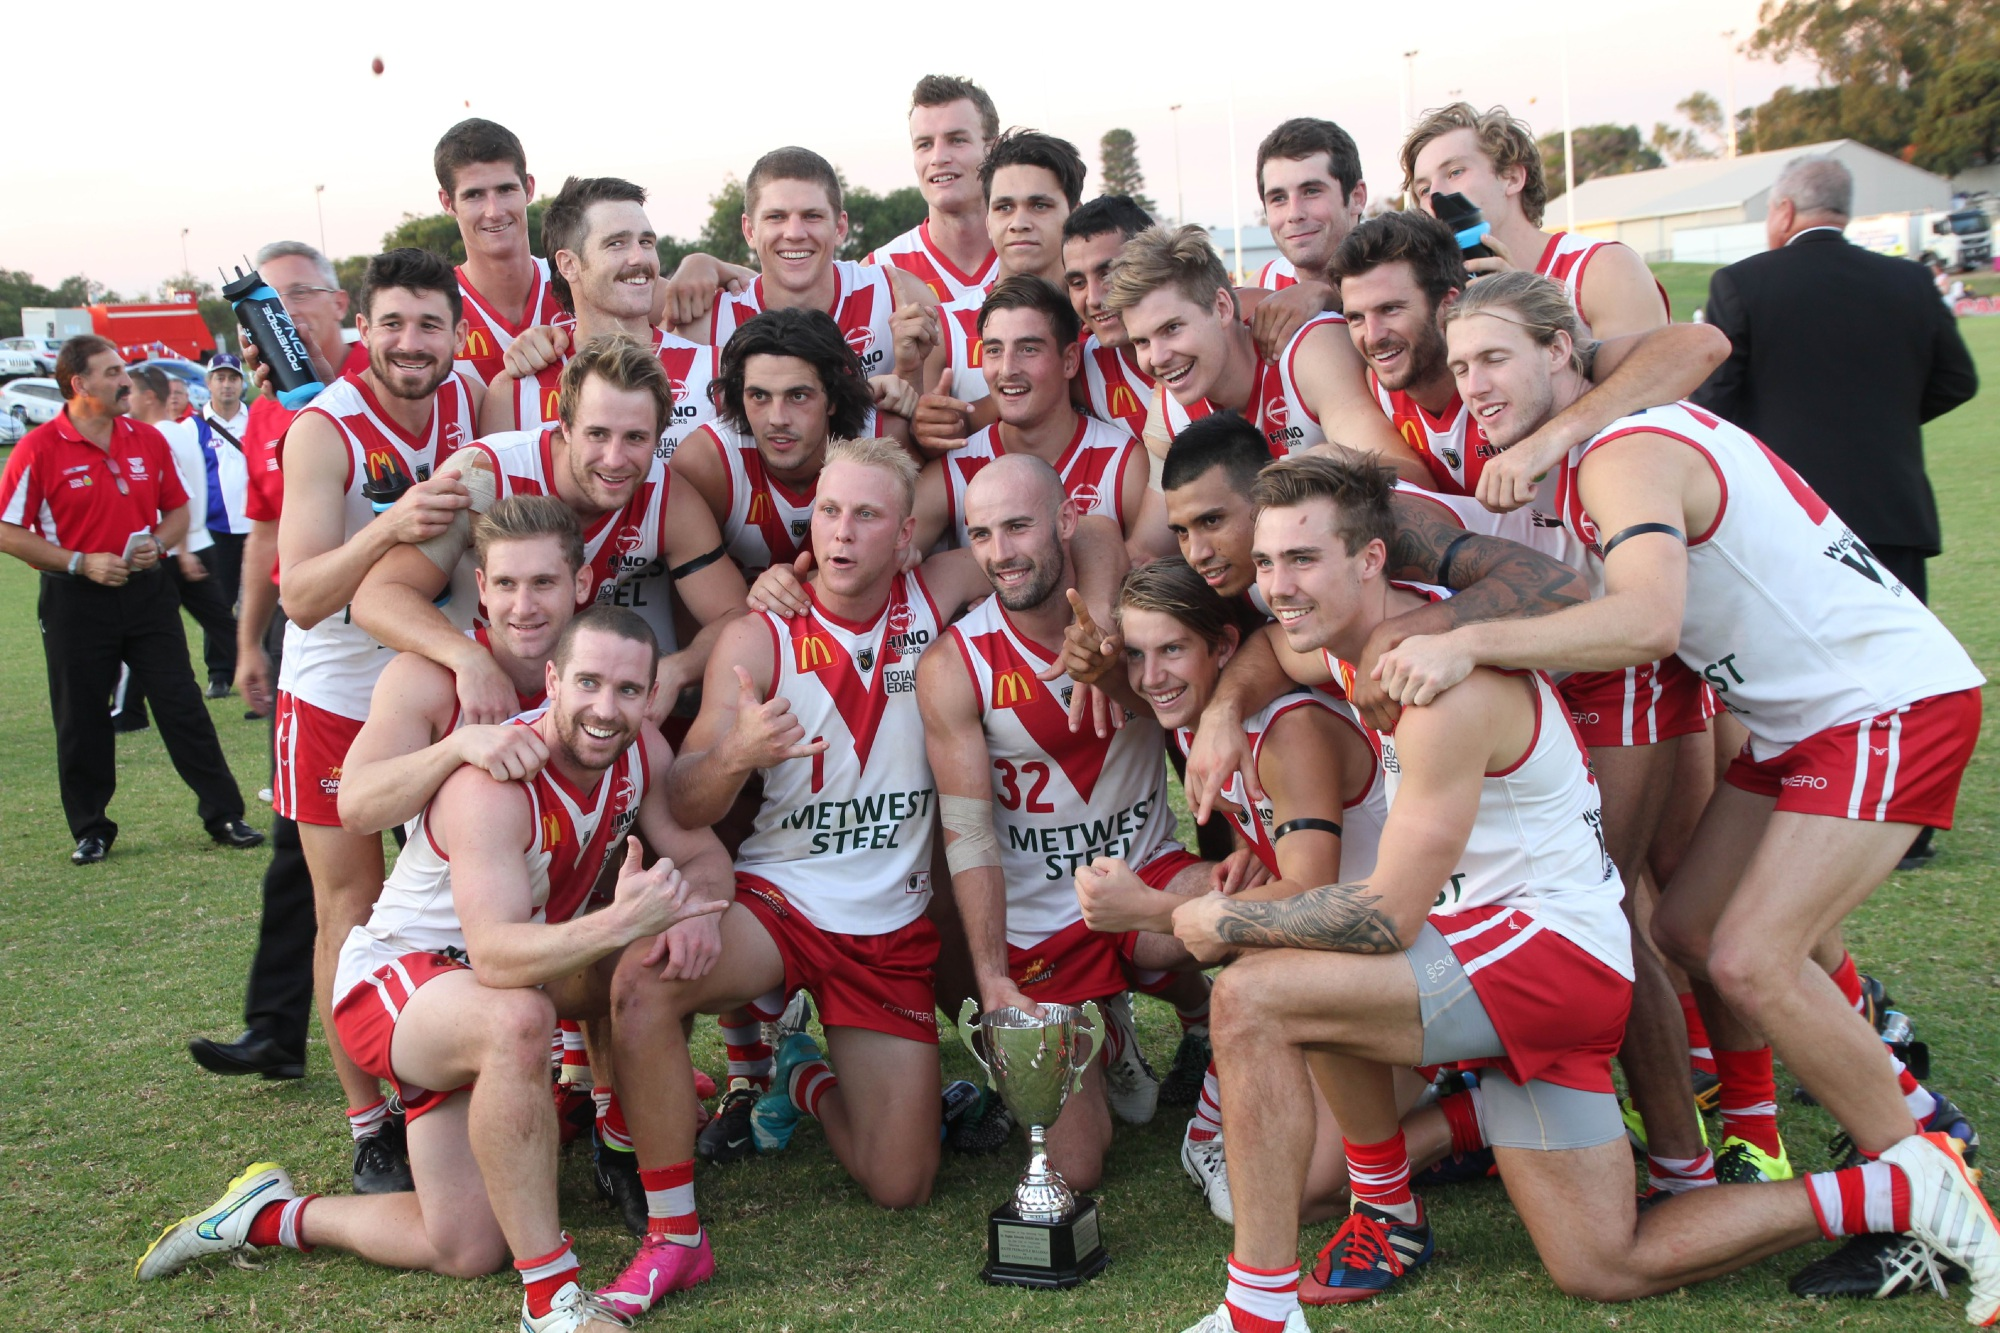 South Fremantle celebrates win over East Fremantle on Saturday. Picture: Phil Elliott/Pixell Photography